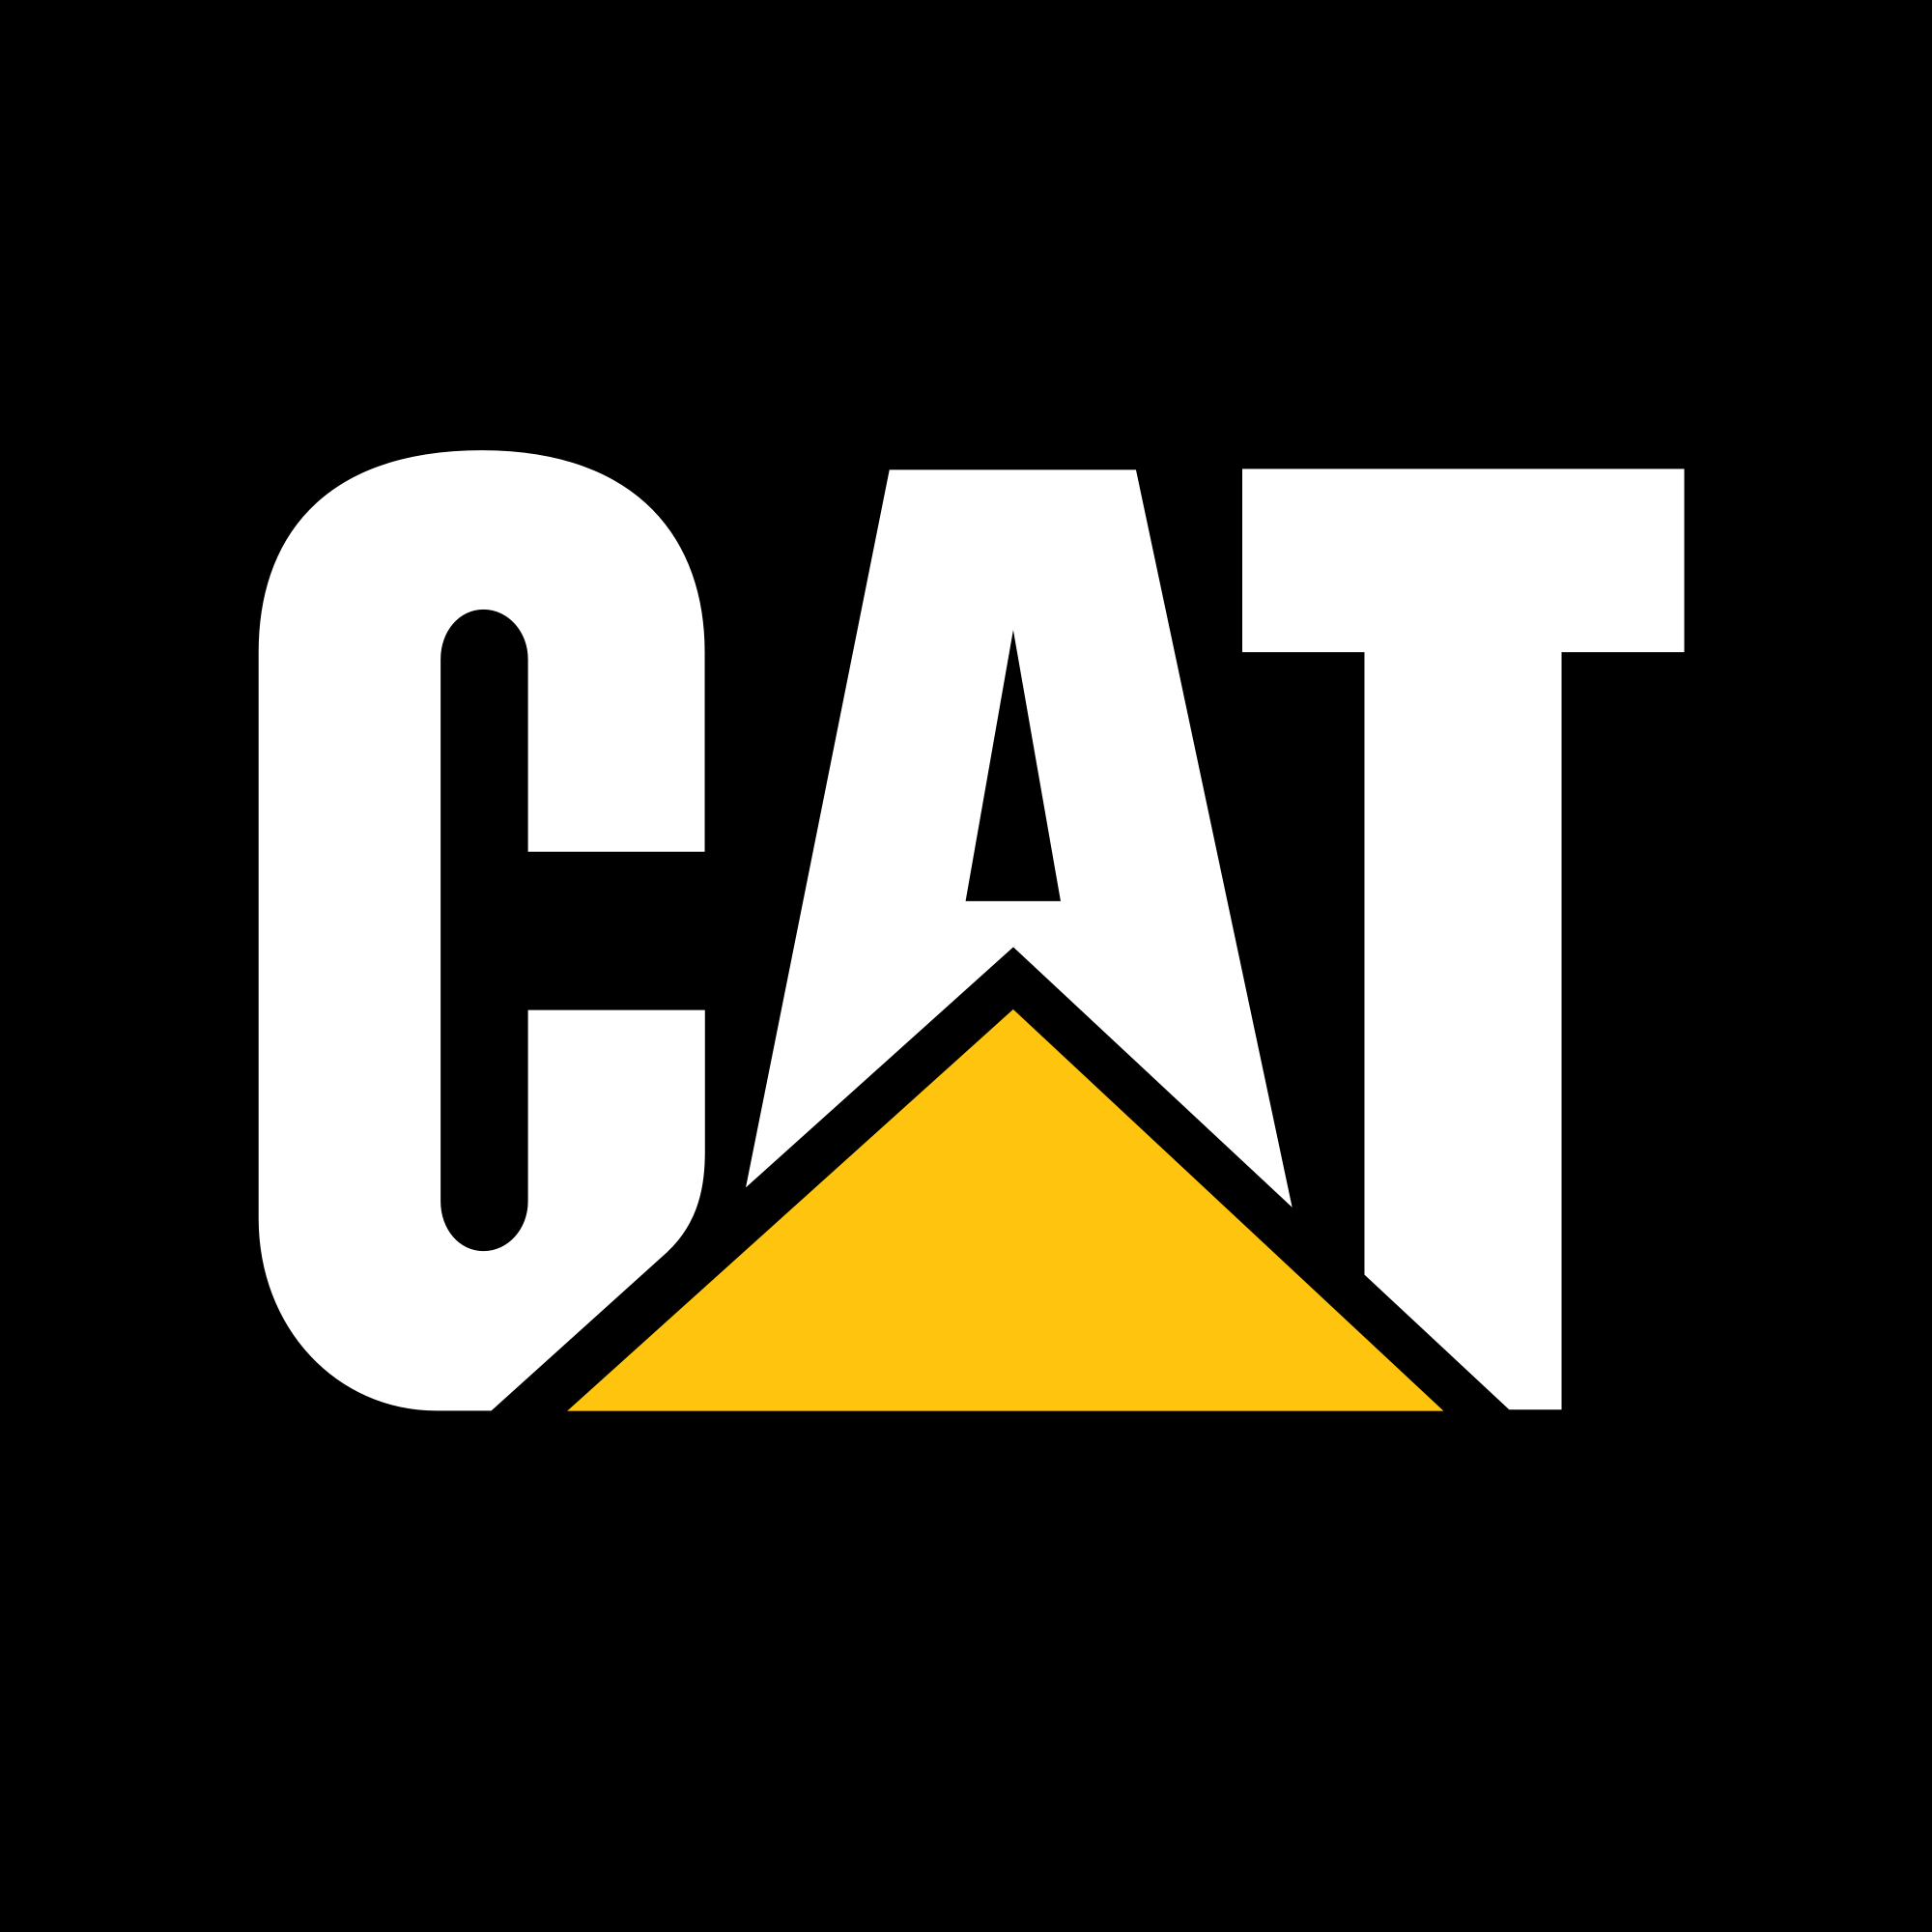 Caterpillar_logo.png